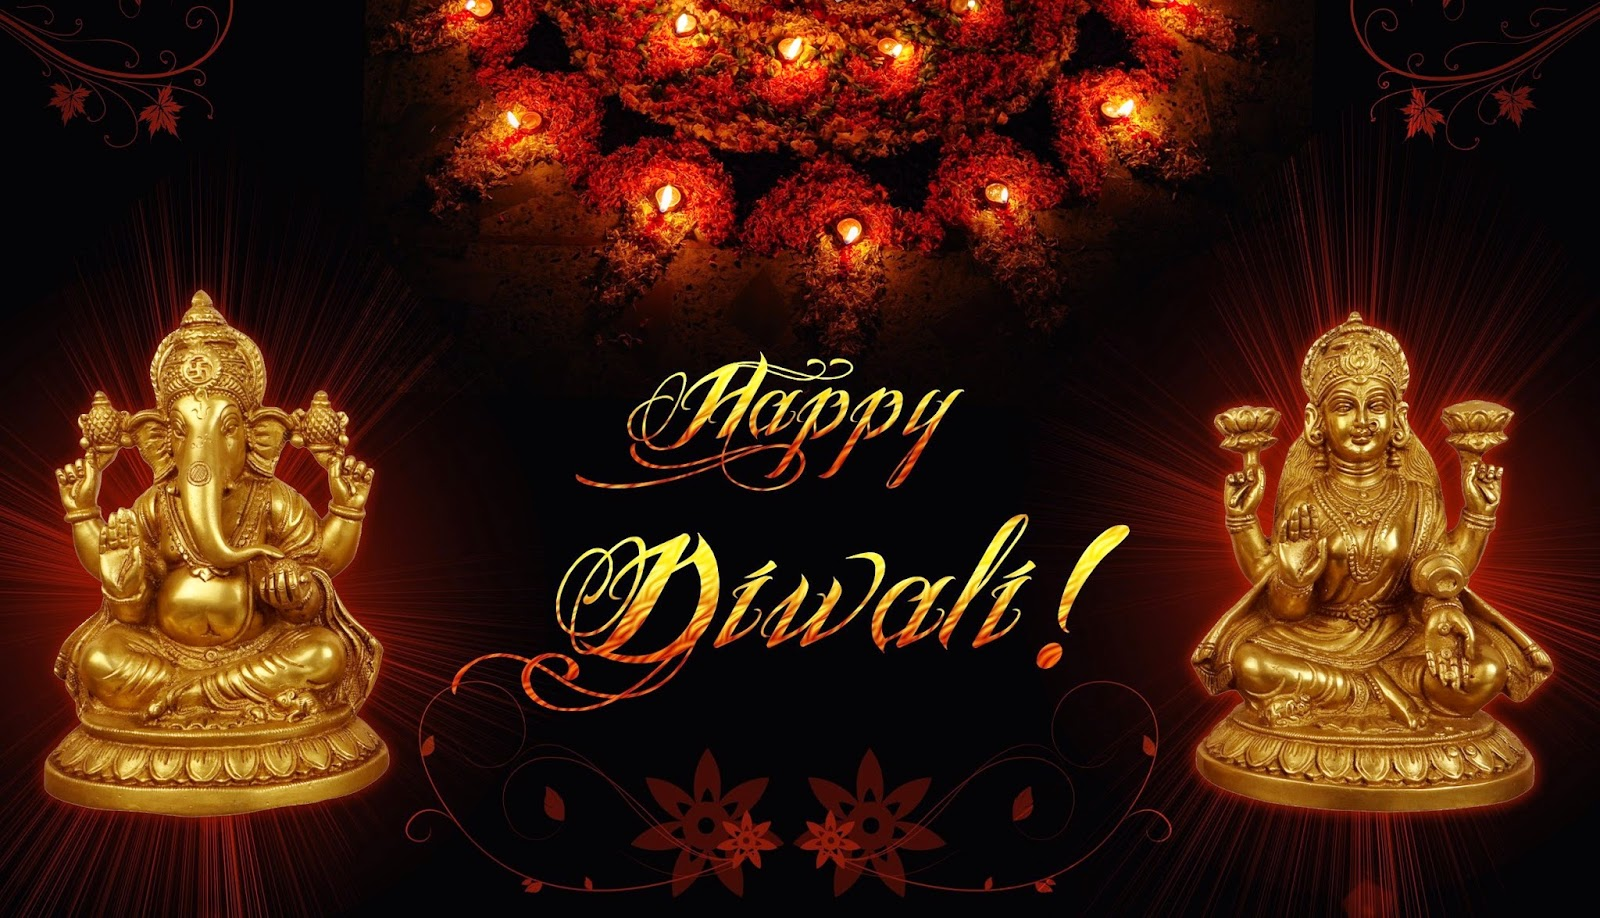 diwali 2014 latest wallpapers download for mobile and